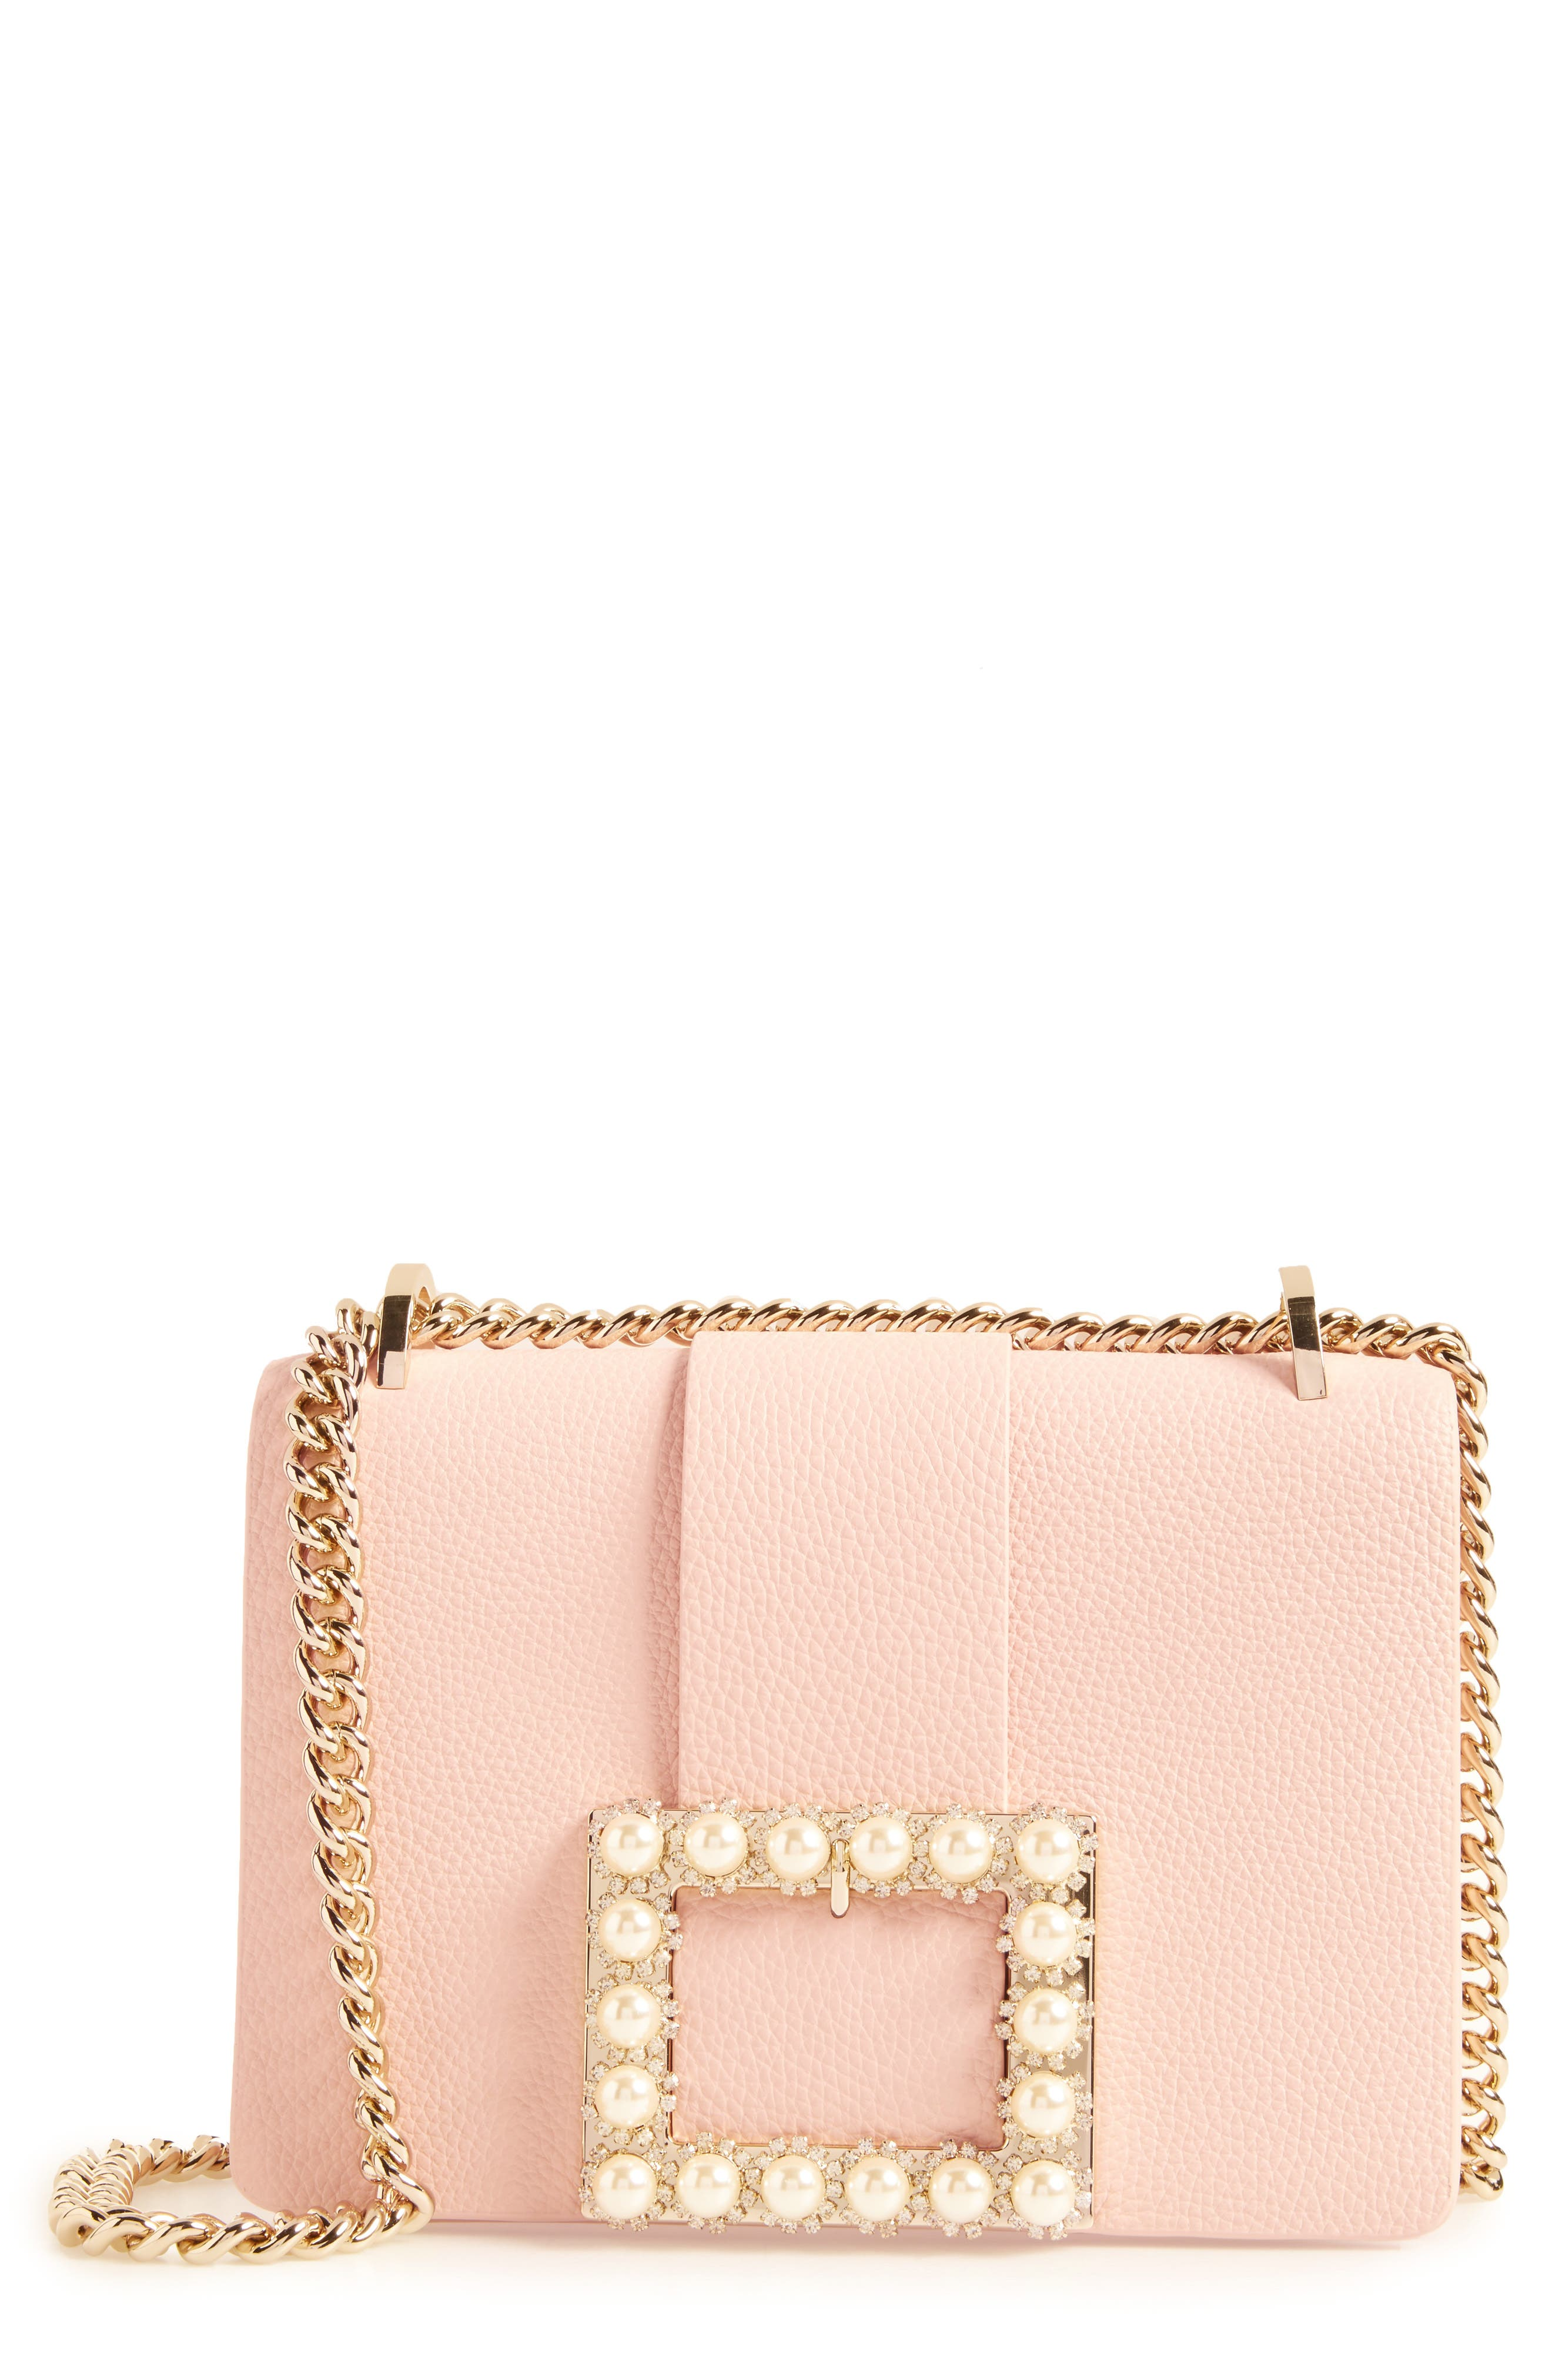 madison knollwood drive - buckle marci leather shoulder bag,                             Main thumbnail 1, color,                             Dolce